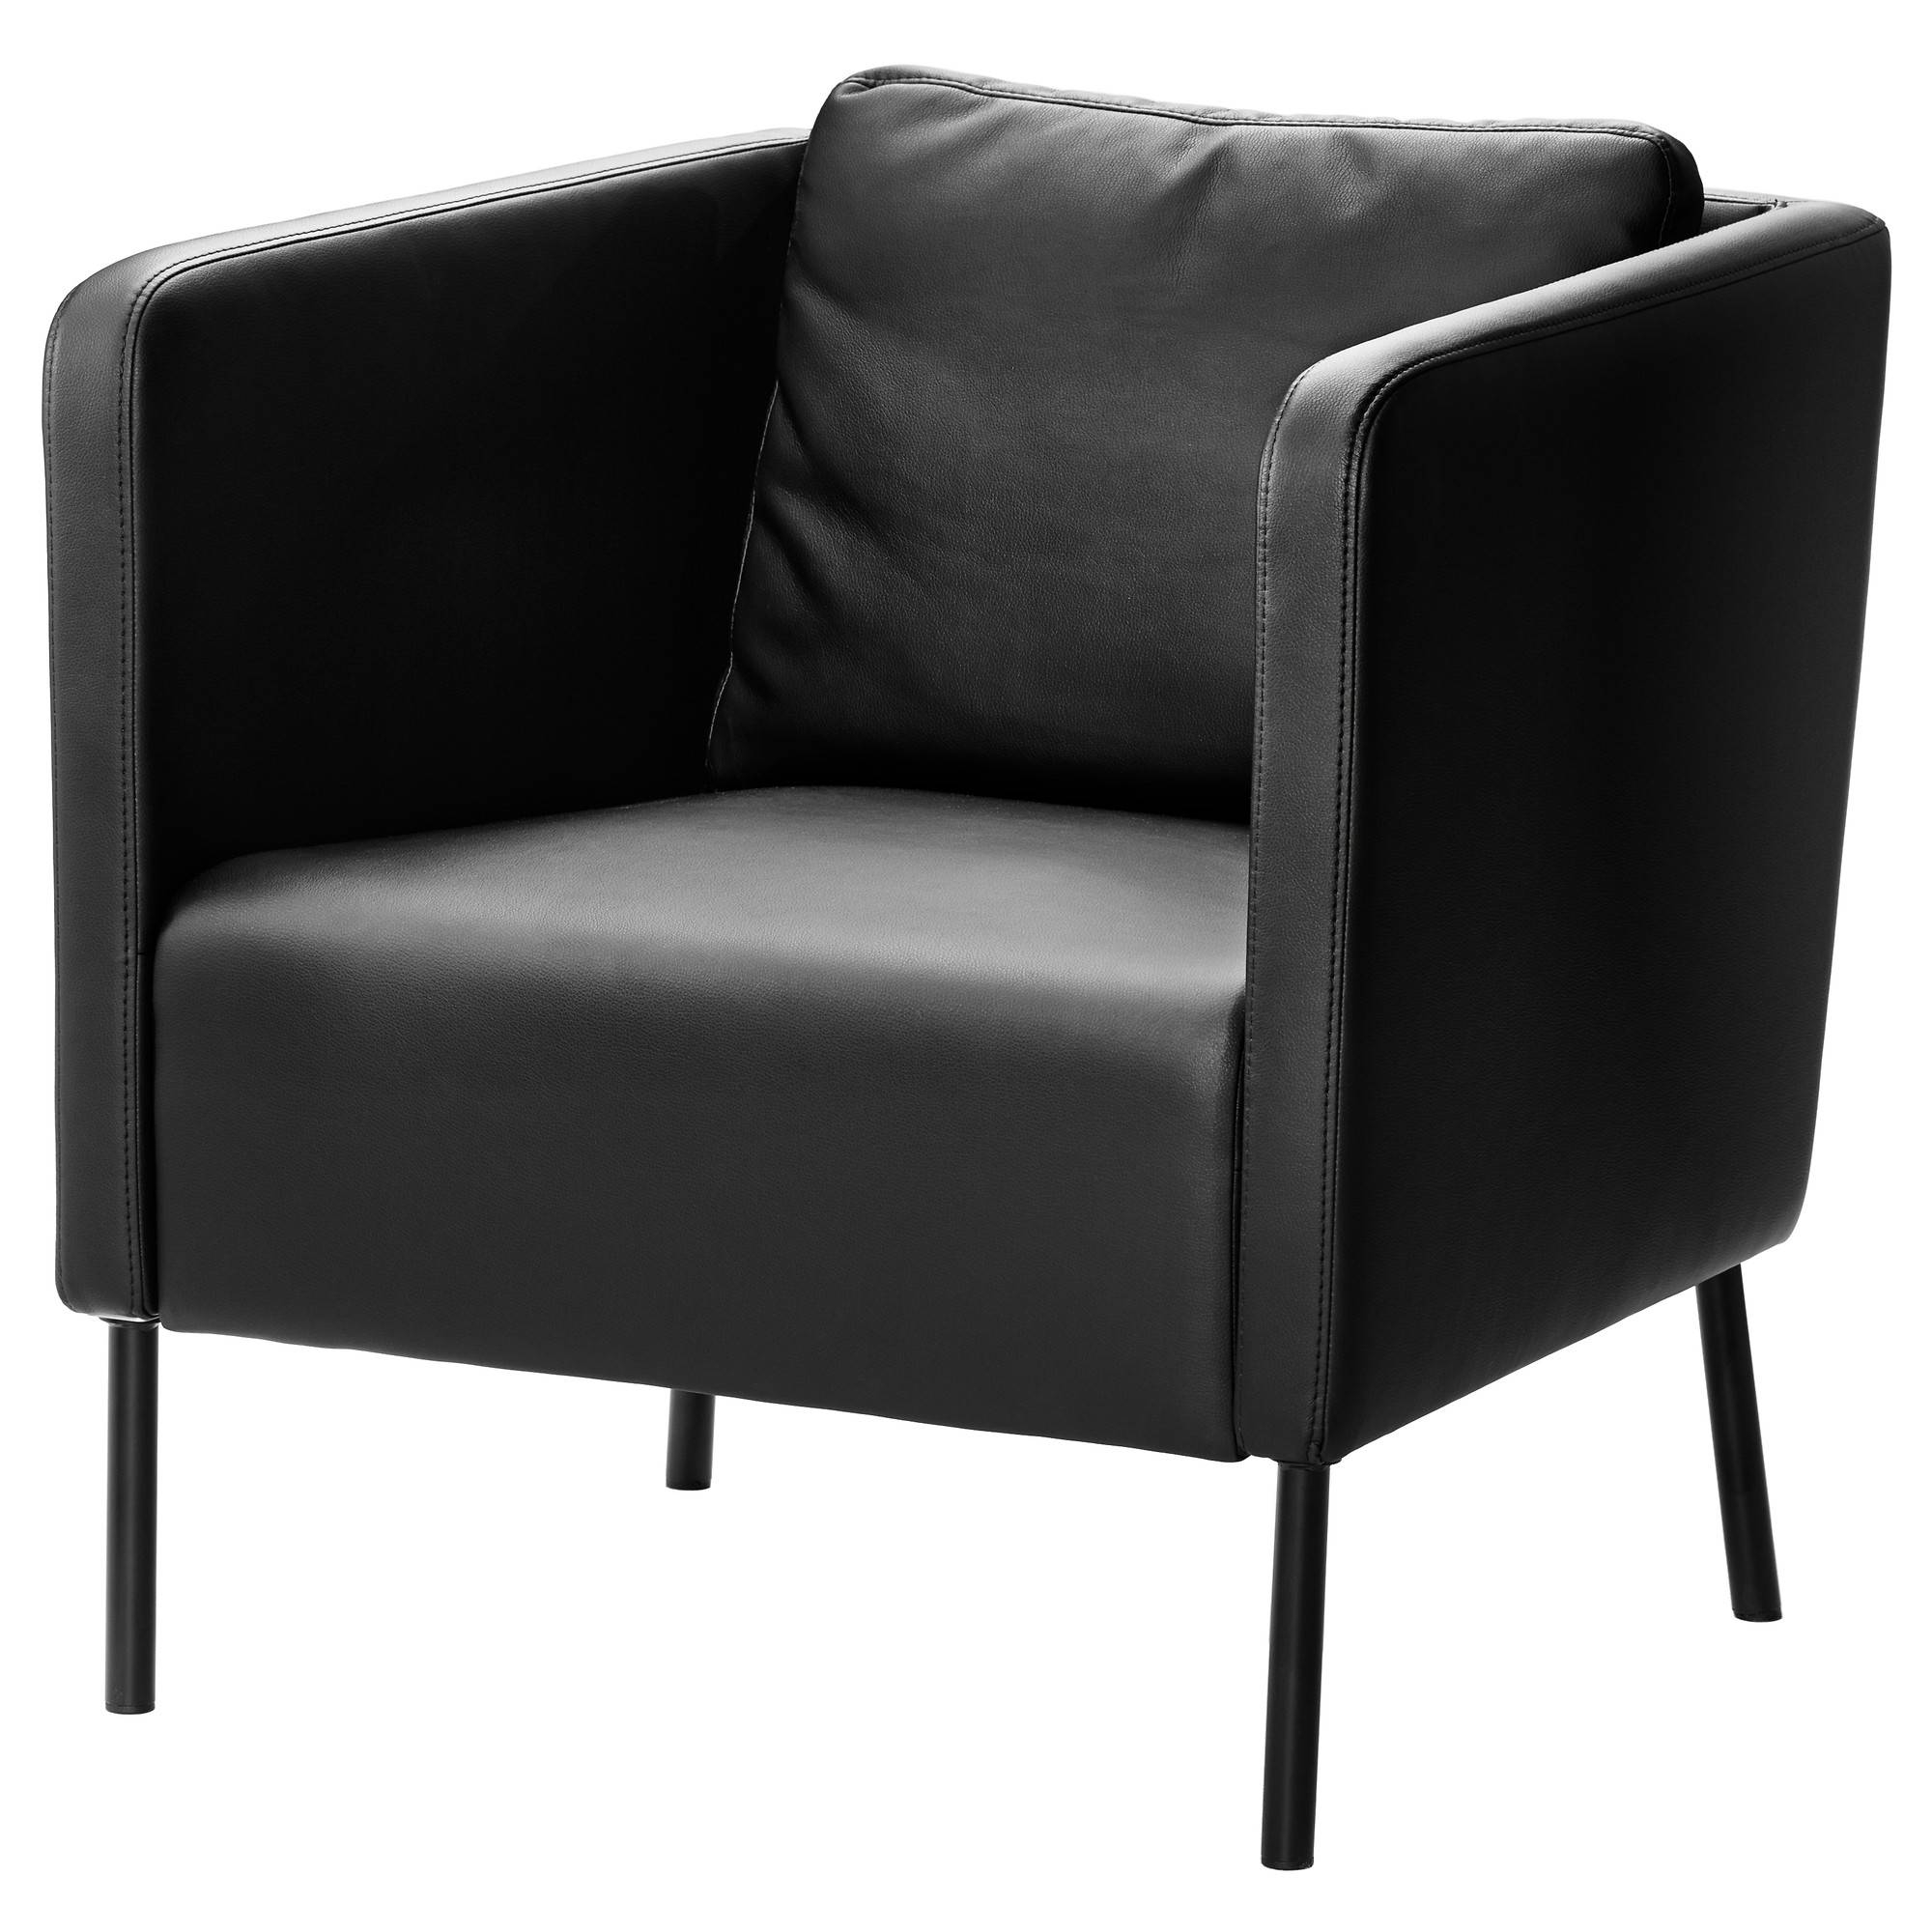 Armchairs - Chaises, Rockers & More - Ikea throughout Single Seat Sofa Chairs (Image 1 of 15)